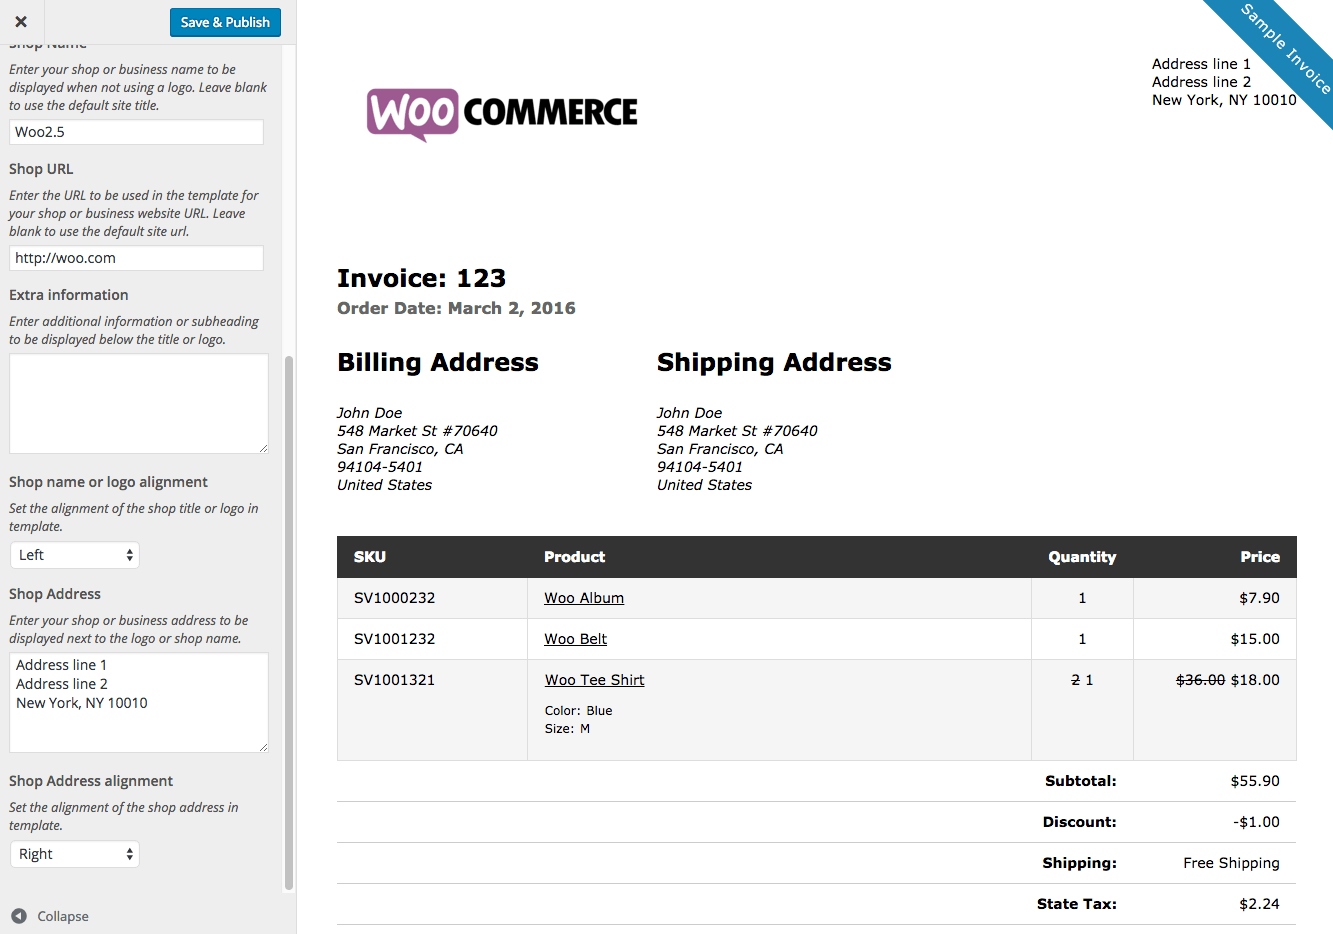 Carsforlessus  Prepossessing Woocommerce Print Invoices Amp Packing Lists  Woocommerce Docs With Engaging Woocommerce Print Invoices  Packing Lists Customizer With Awesome Dodge Durango Invoice Price Also How To Make A Business Invoice In Addition Template For Billing Invoice And Generic Invoice Template Excel As Well As Blank Invoice Document Additionally Transportation Invoice Template From Docswoocommercecom With Carsforlessus  Engaging Woocommerce Print Invoices Amp Packing Lists  Woocommerce Docs With Awesome Woocommerce Print Invoices  Packing Lists Customizer And Prepossessing Dodge Durango Invoice Price Also How To Make A Business Invoice In Addition Template For Billing Invoice From Docswoocommercecom